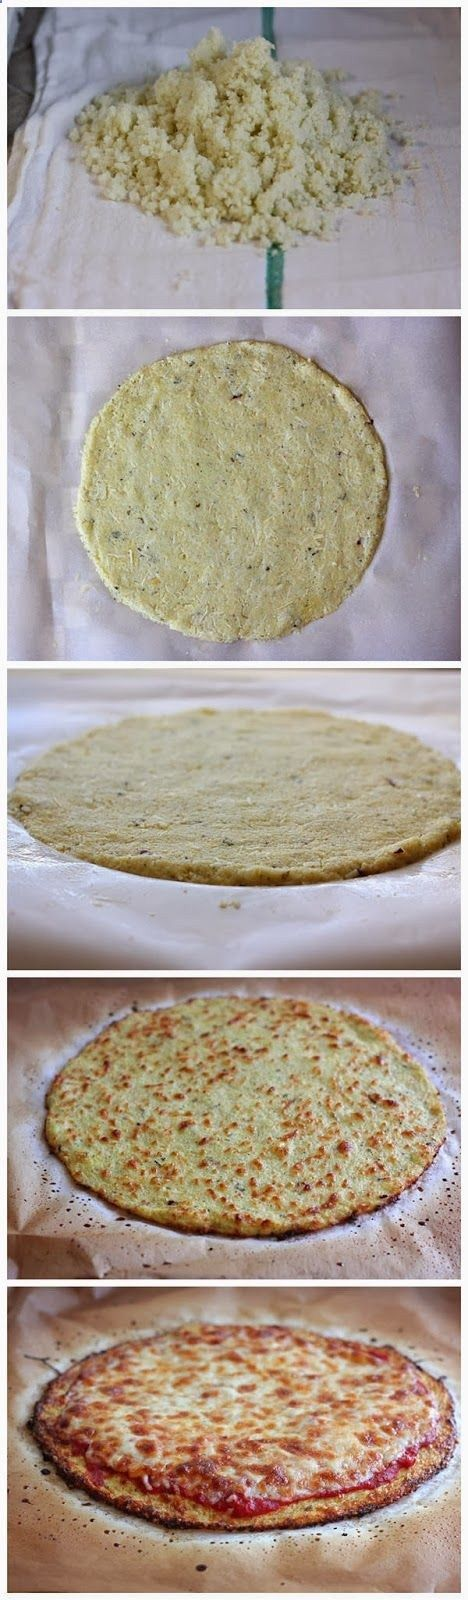 Ditch the refined white flour and select this amazing Cauliflower Crust for pizza instead!